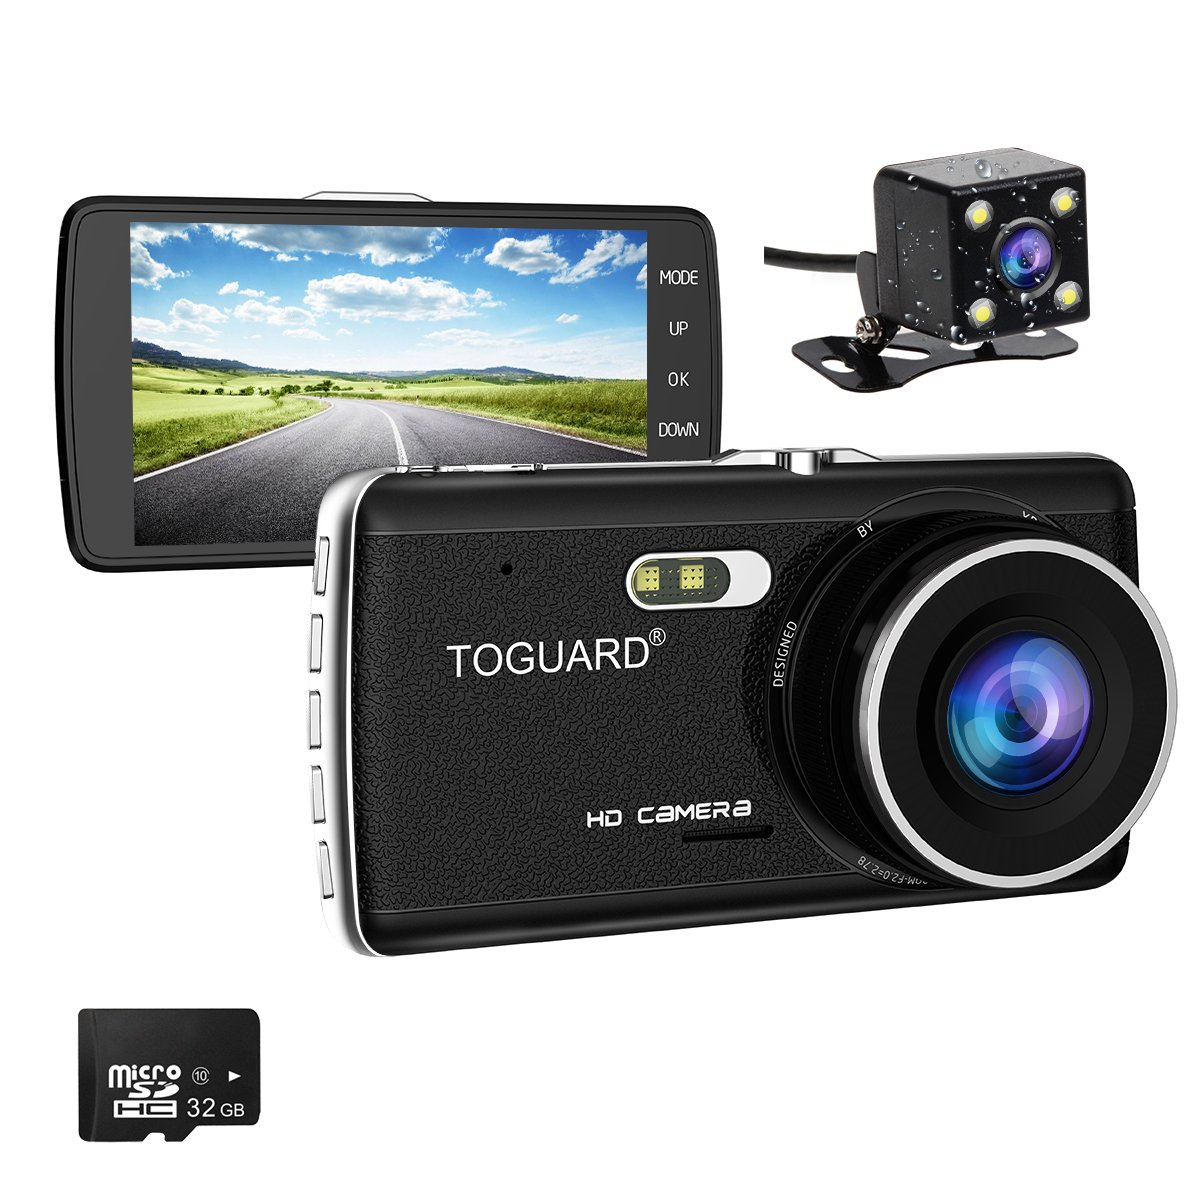 TOGUARD Full HD 1080P Dual Dash Dam 4.0 inch LCD Screen Car Dash Cam DVR, Front Camera and Rear View Cam, 170 Degree Wide Angle with Loop Recording, Parking Monitor, G-sensor, Night Vision CE684